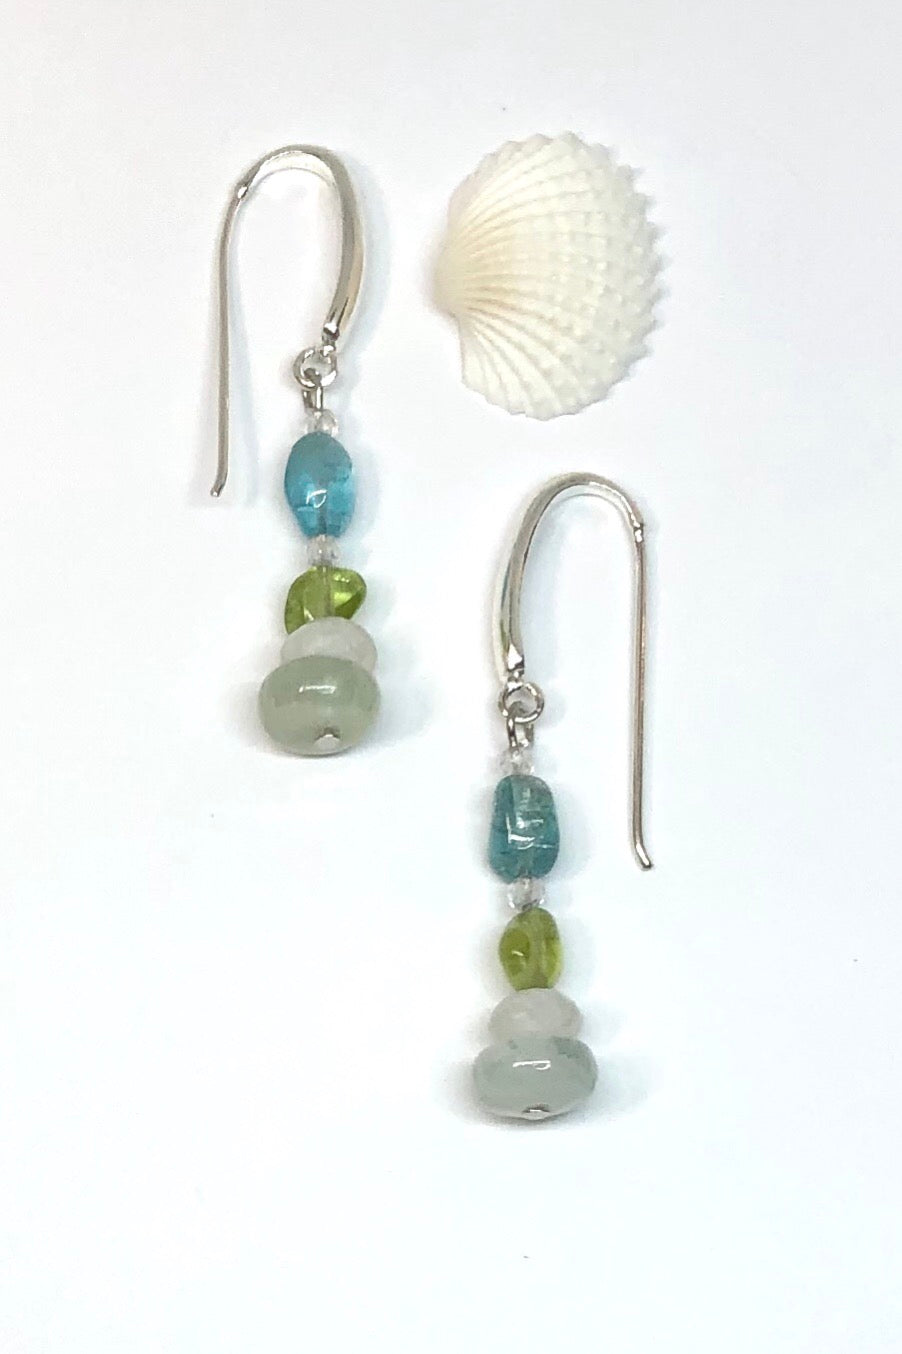 The Earrings Serendipity Pretty Six are handmade in Noosa, Australia featuring peridot, moonstone and quartz crystal.